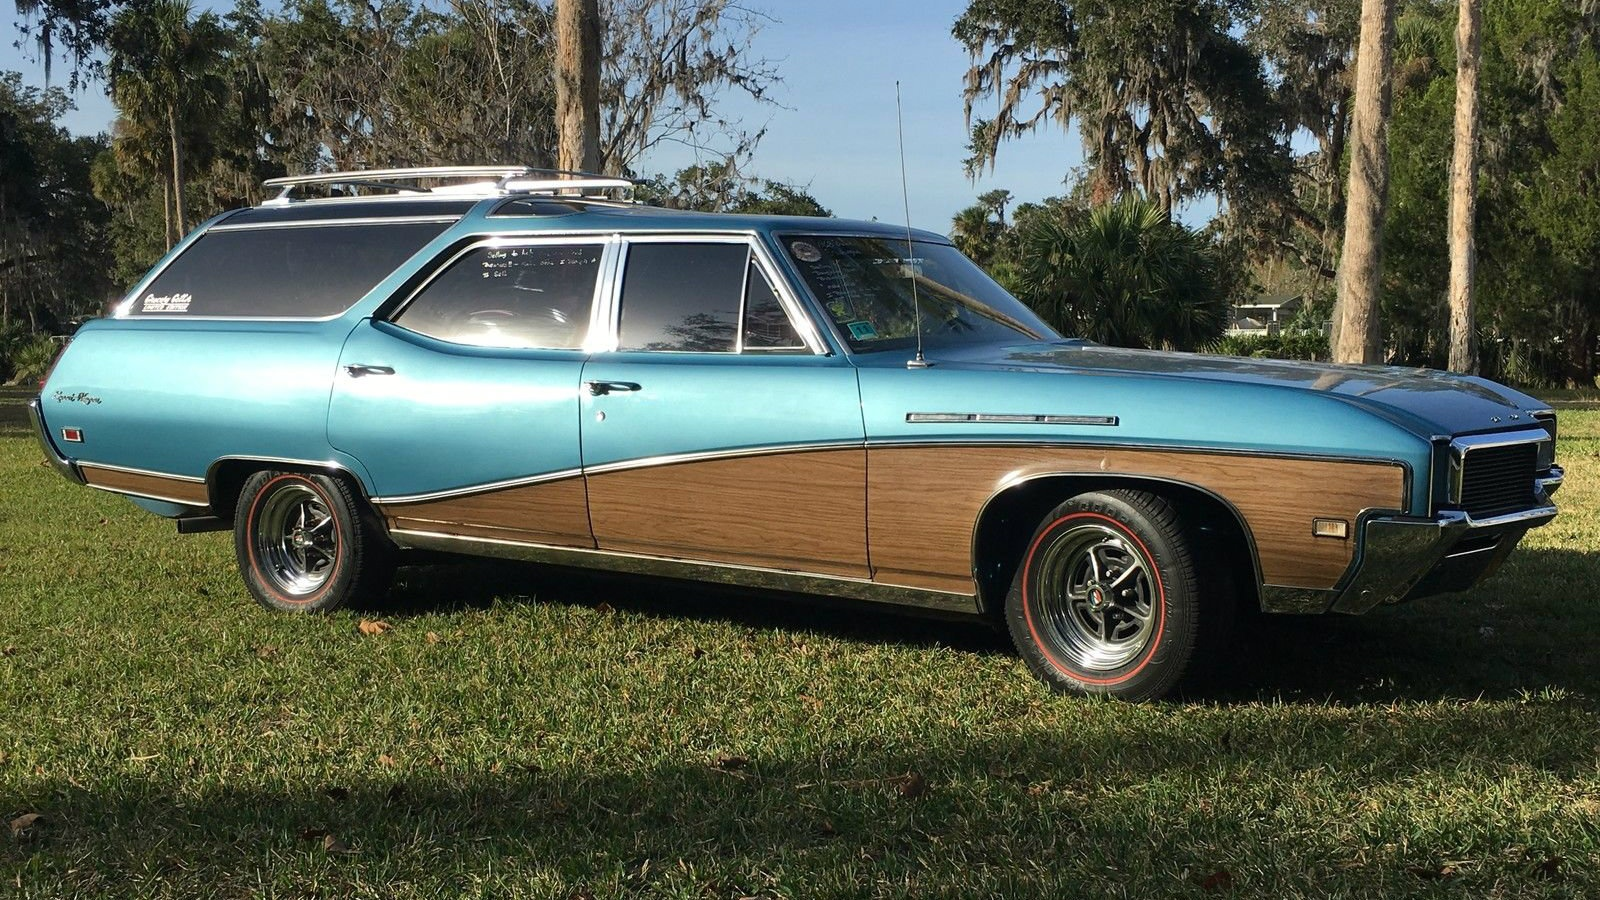 1968 buick sport wagon in sunshine. Black Bedroom Furniture Sets. Home Design Ideas